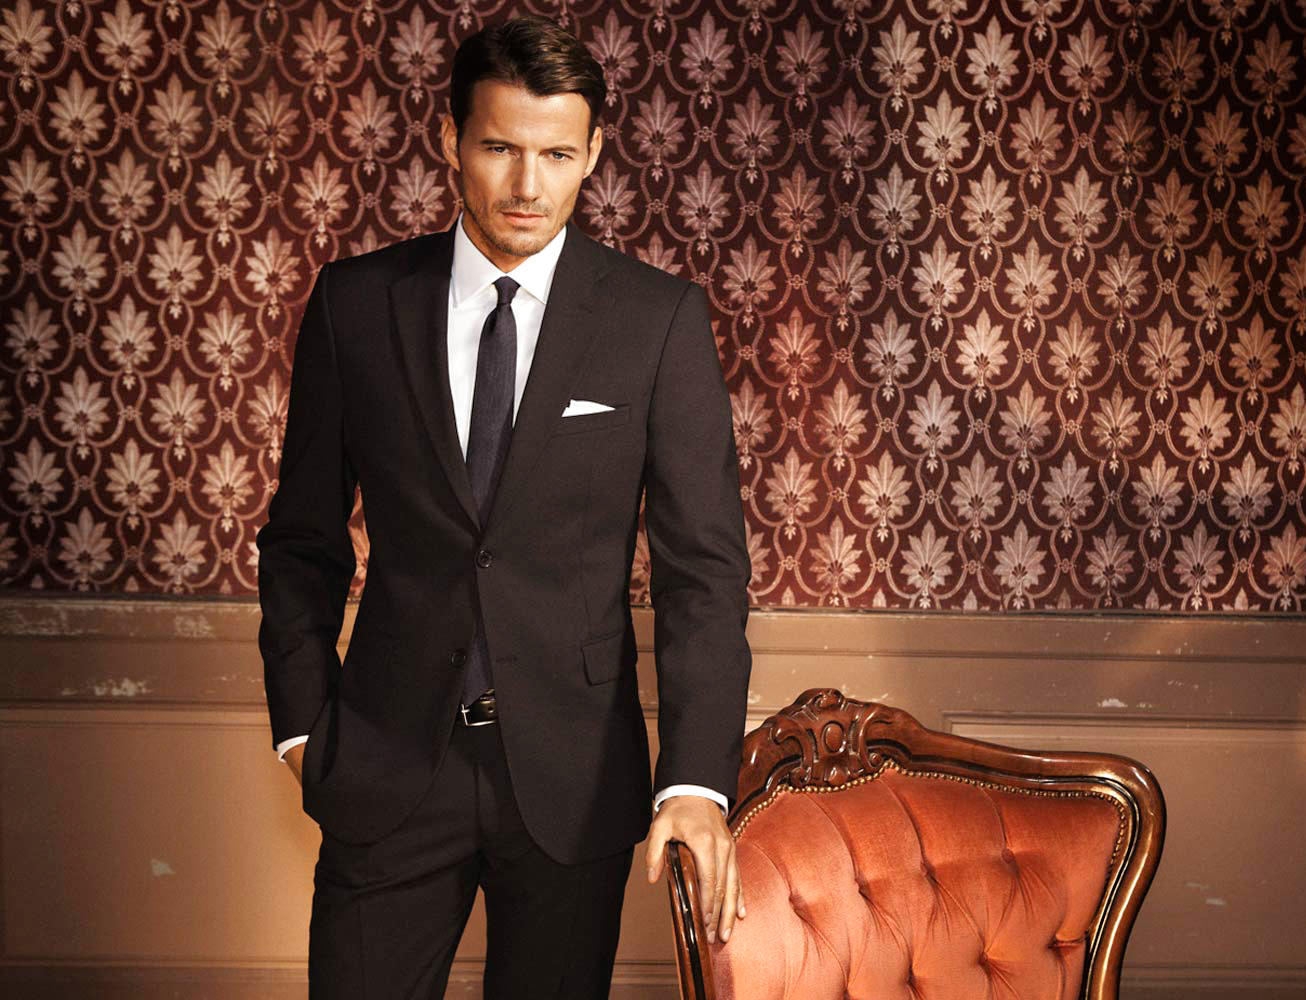 Black and white suit, shirt and tie color combination